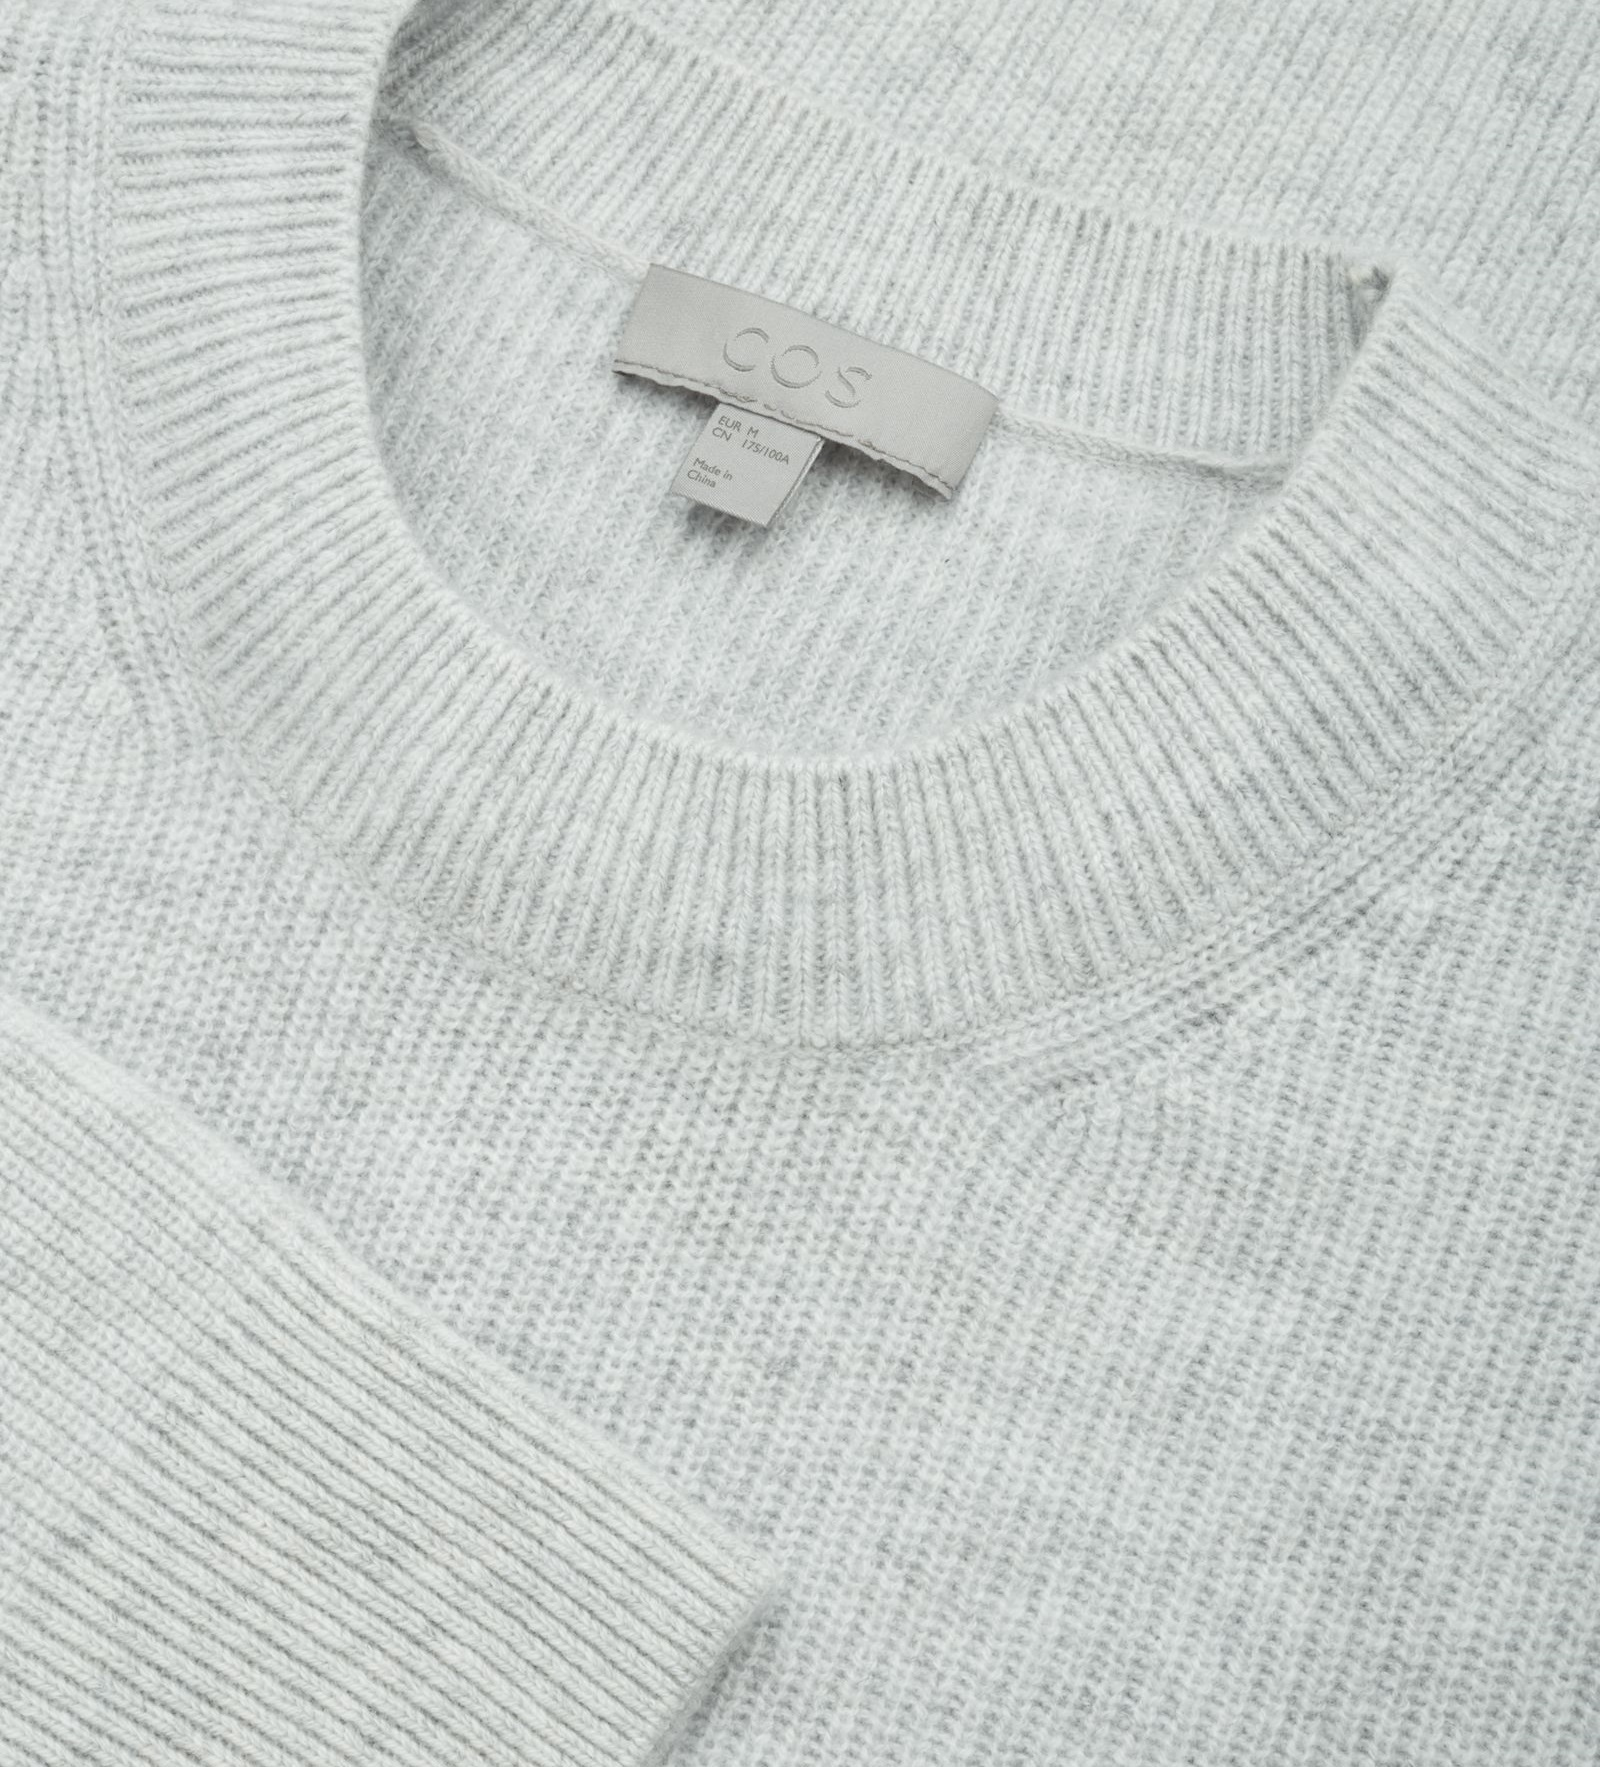 """COS MEN""CARDIGAN-STITCH CASHMERE JUMPER LG"